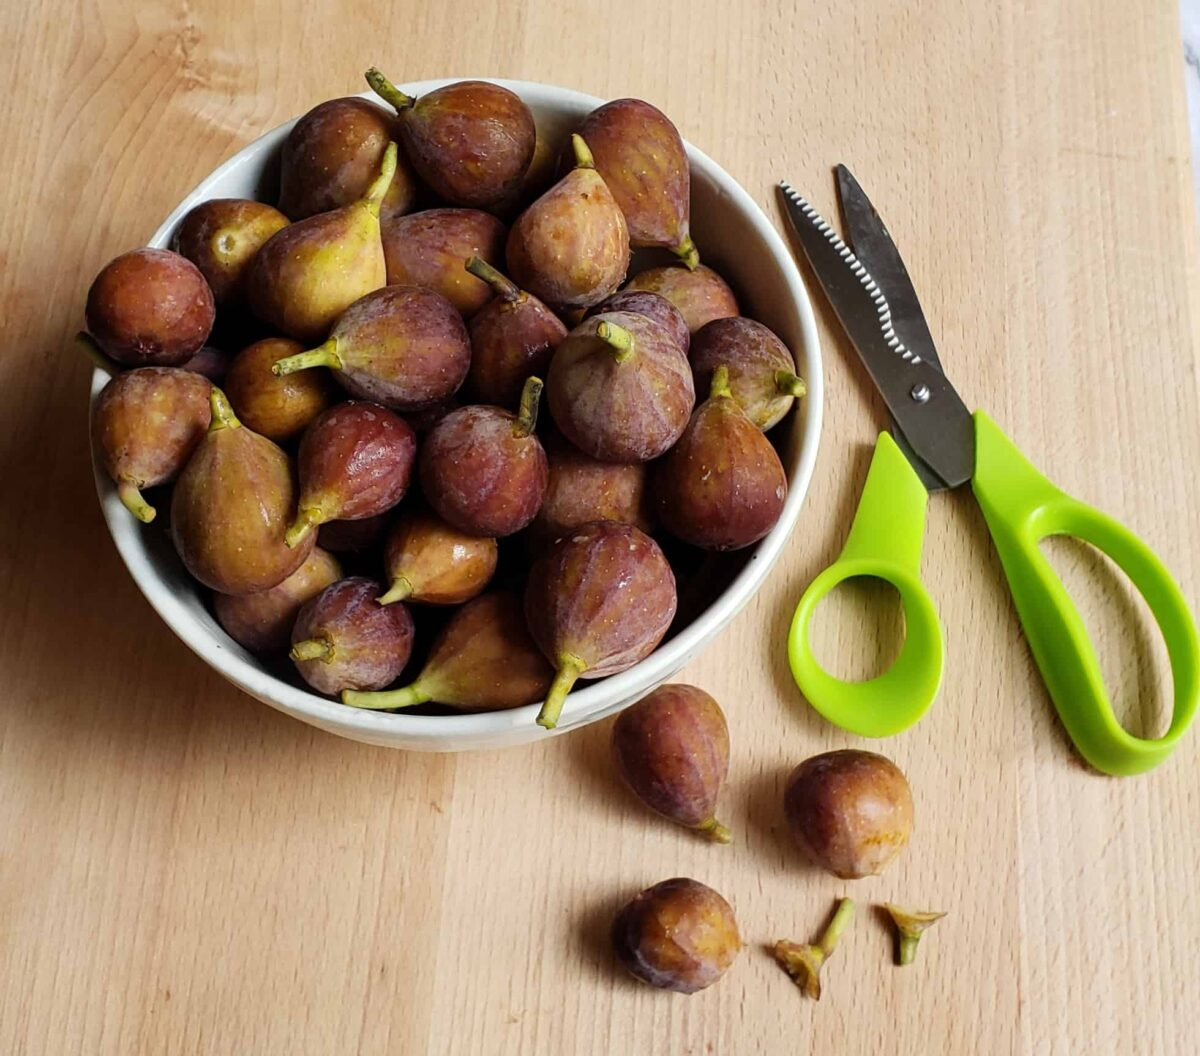 Bowl of small mission figs with stems snipped off with scissors